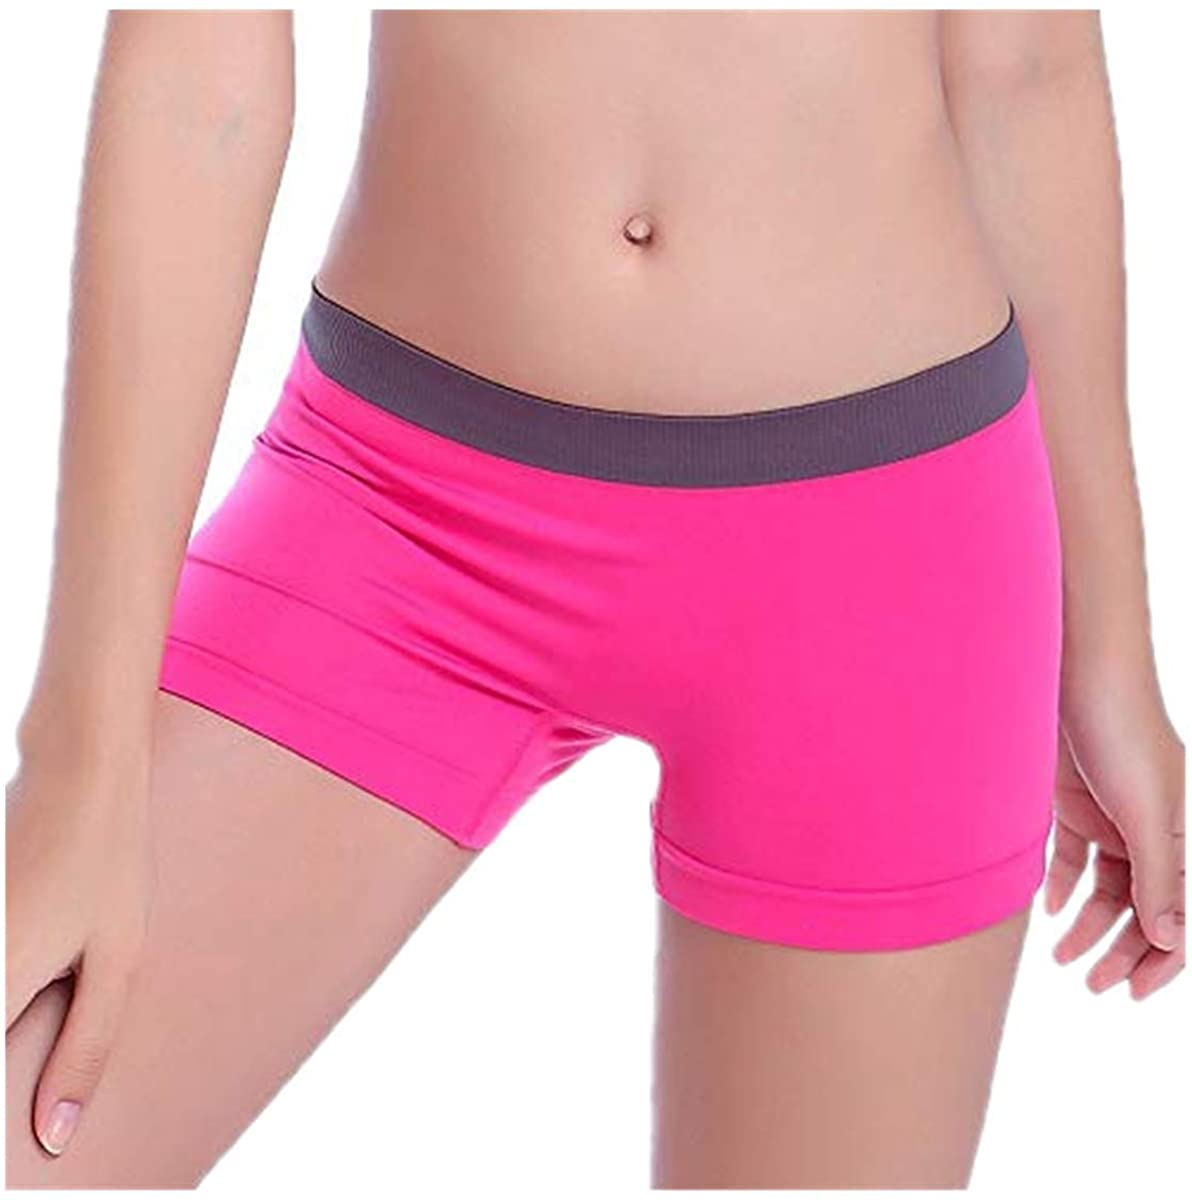 Adeliber Summer Women's High Waist Yoga Pants Running Exercise Fitness Belt Shorts